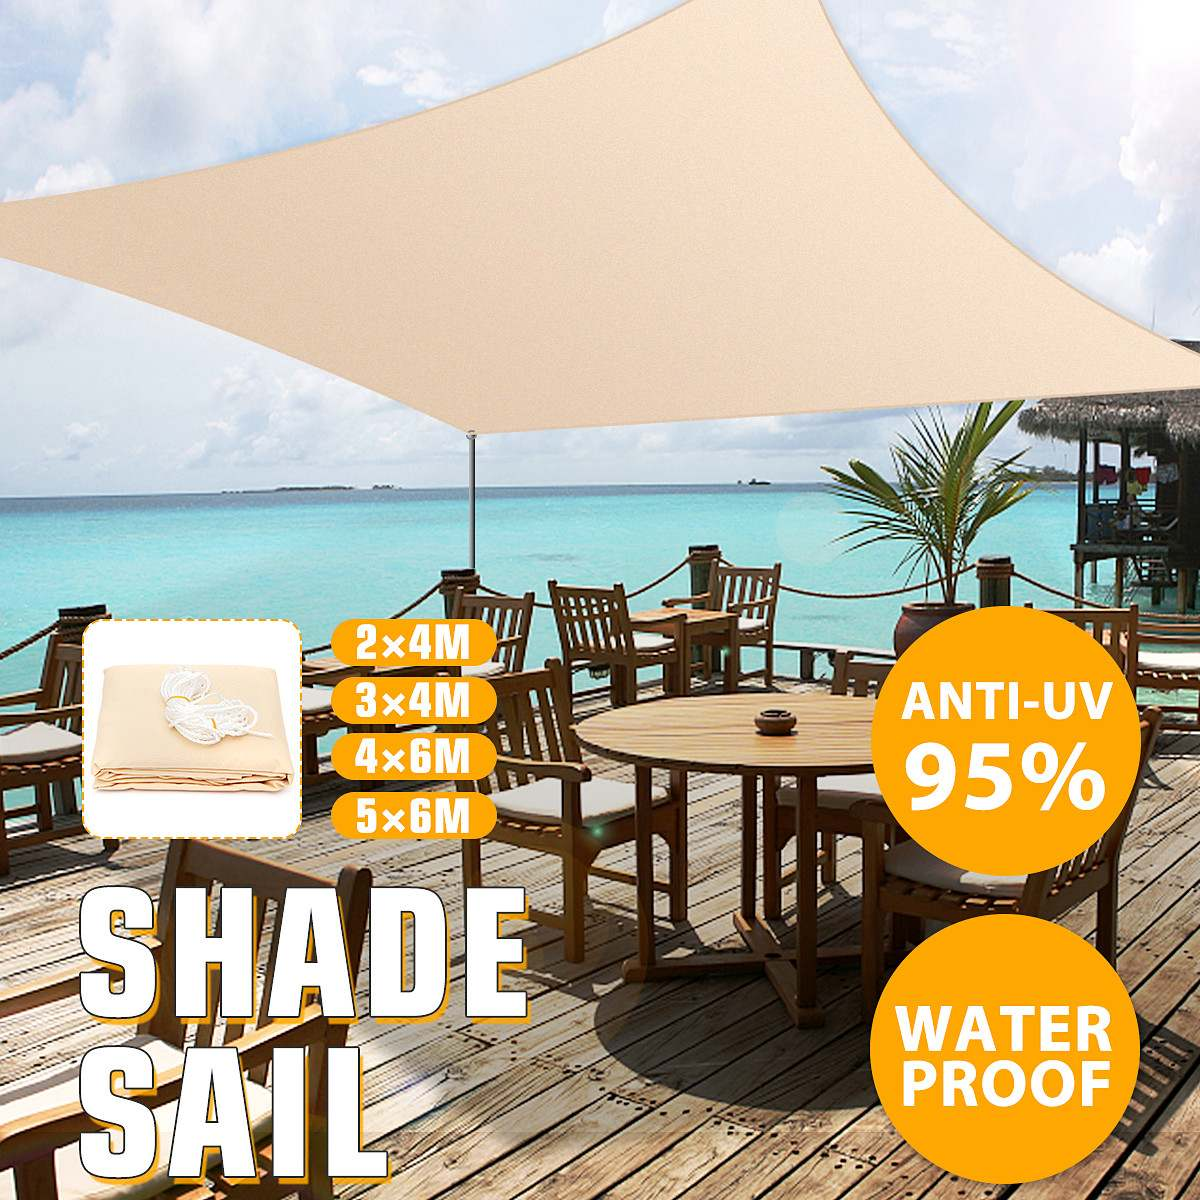 2x4 3x4 4x6 5x6m 4 Sizes Sun Shade Canopies Sails Outdoor Camping Hiking Yard Garden Shelters Uv Block Top Cover Waterproof